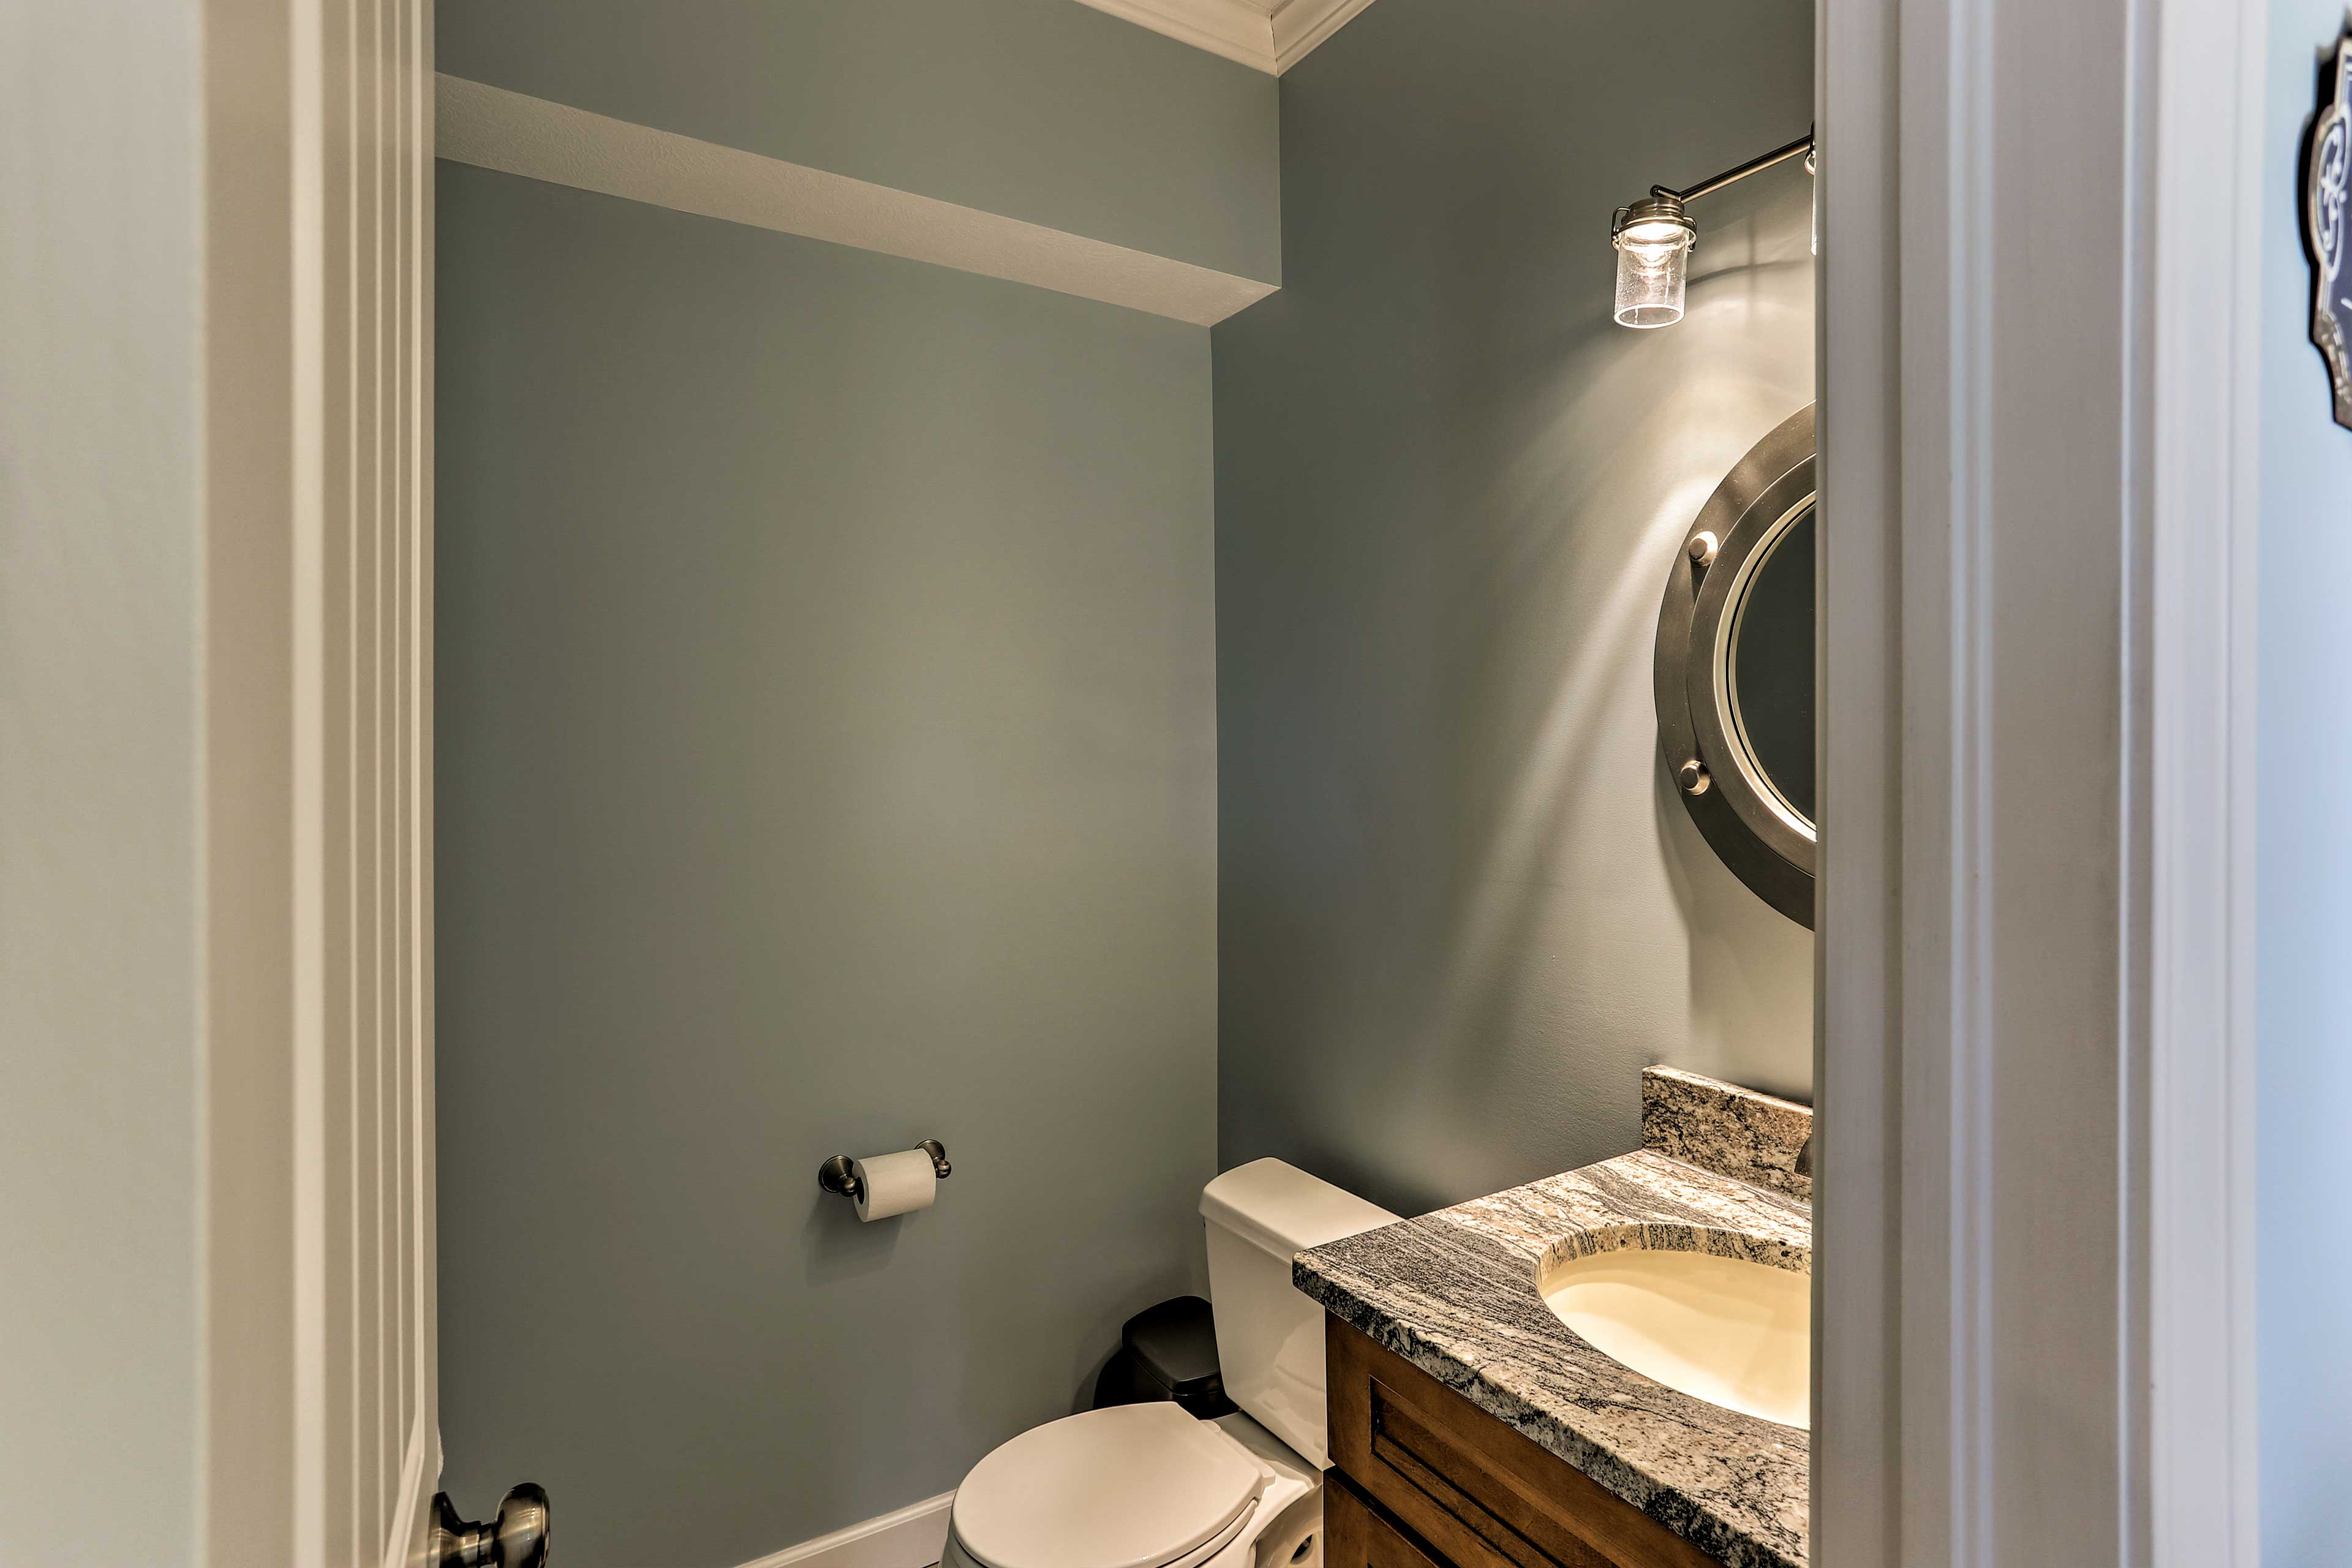 The home offers 2.5 bathrooms for guests to use.